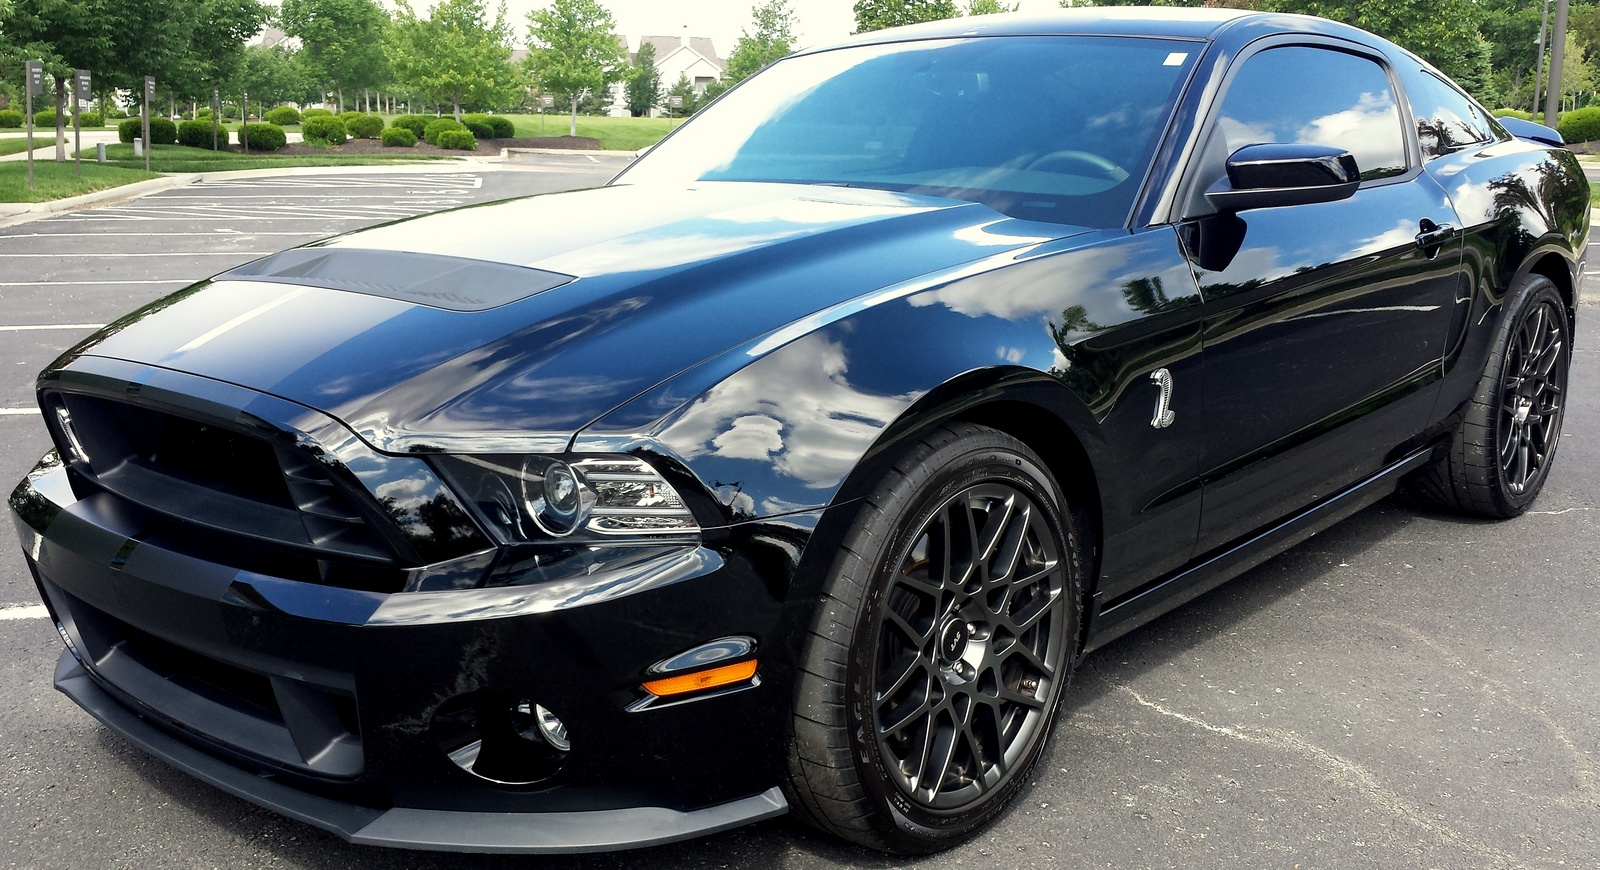 ford mustang shelby gt350 ford 2015 facelift cars review 2016 2017 2017 2018 best cars reviews. Black Bedroom Furniture Sets. Home Design Ideas